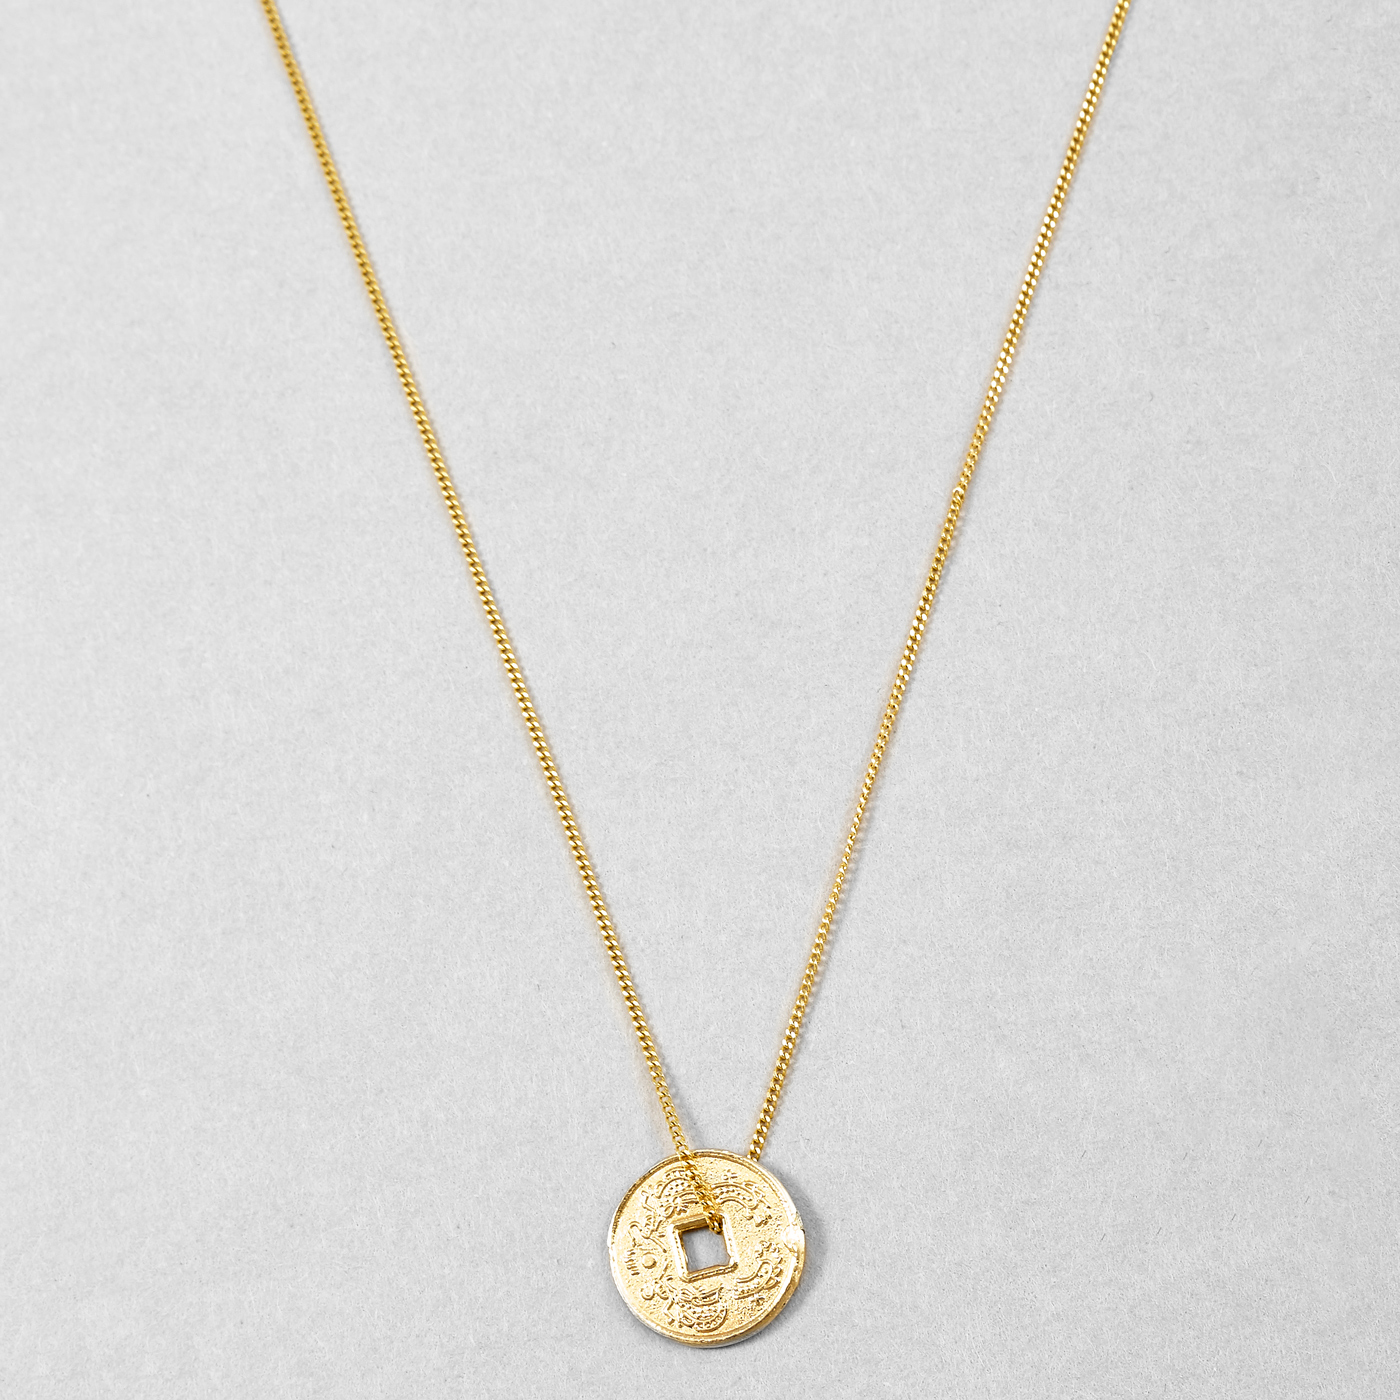 Loren Stewart Coin Pendant Necklace